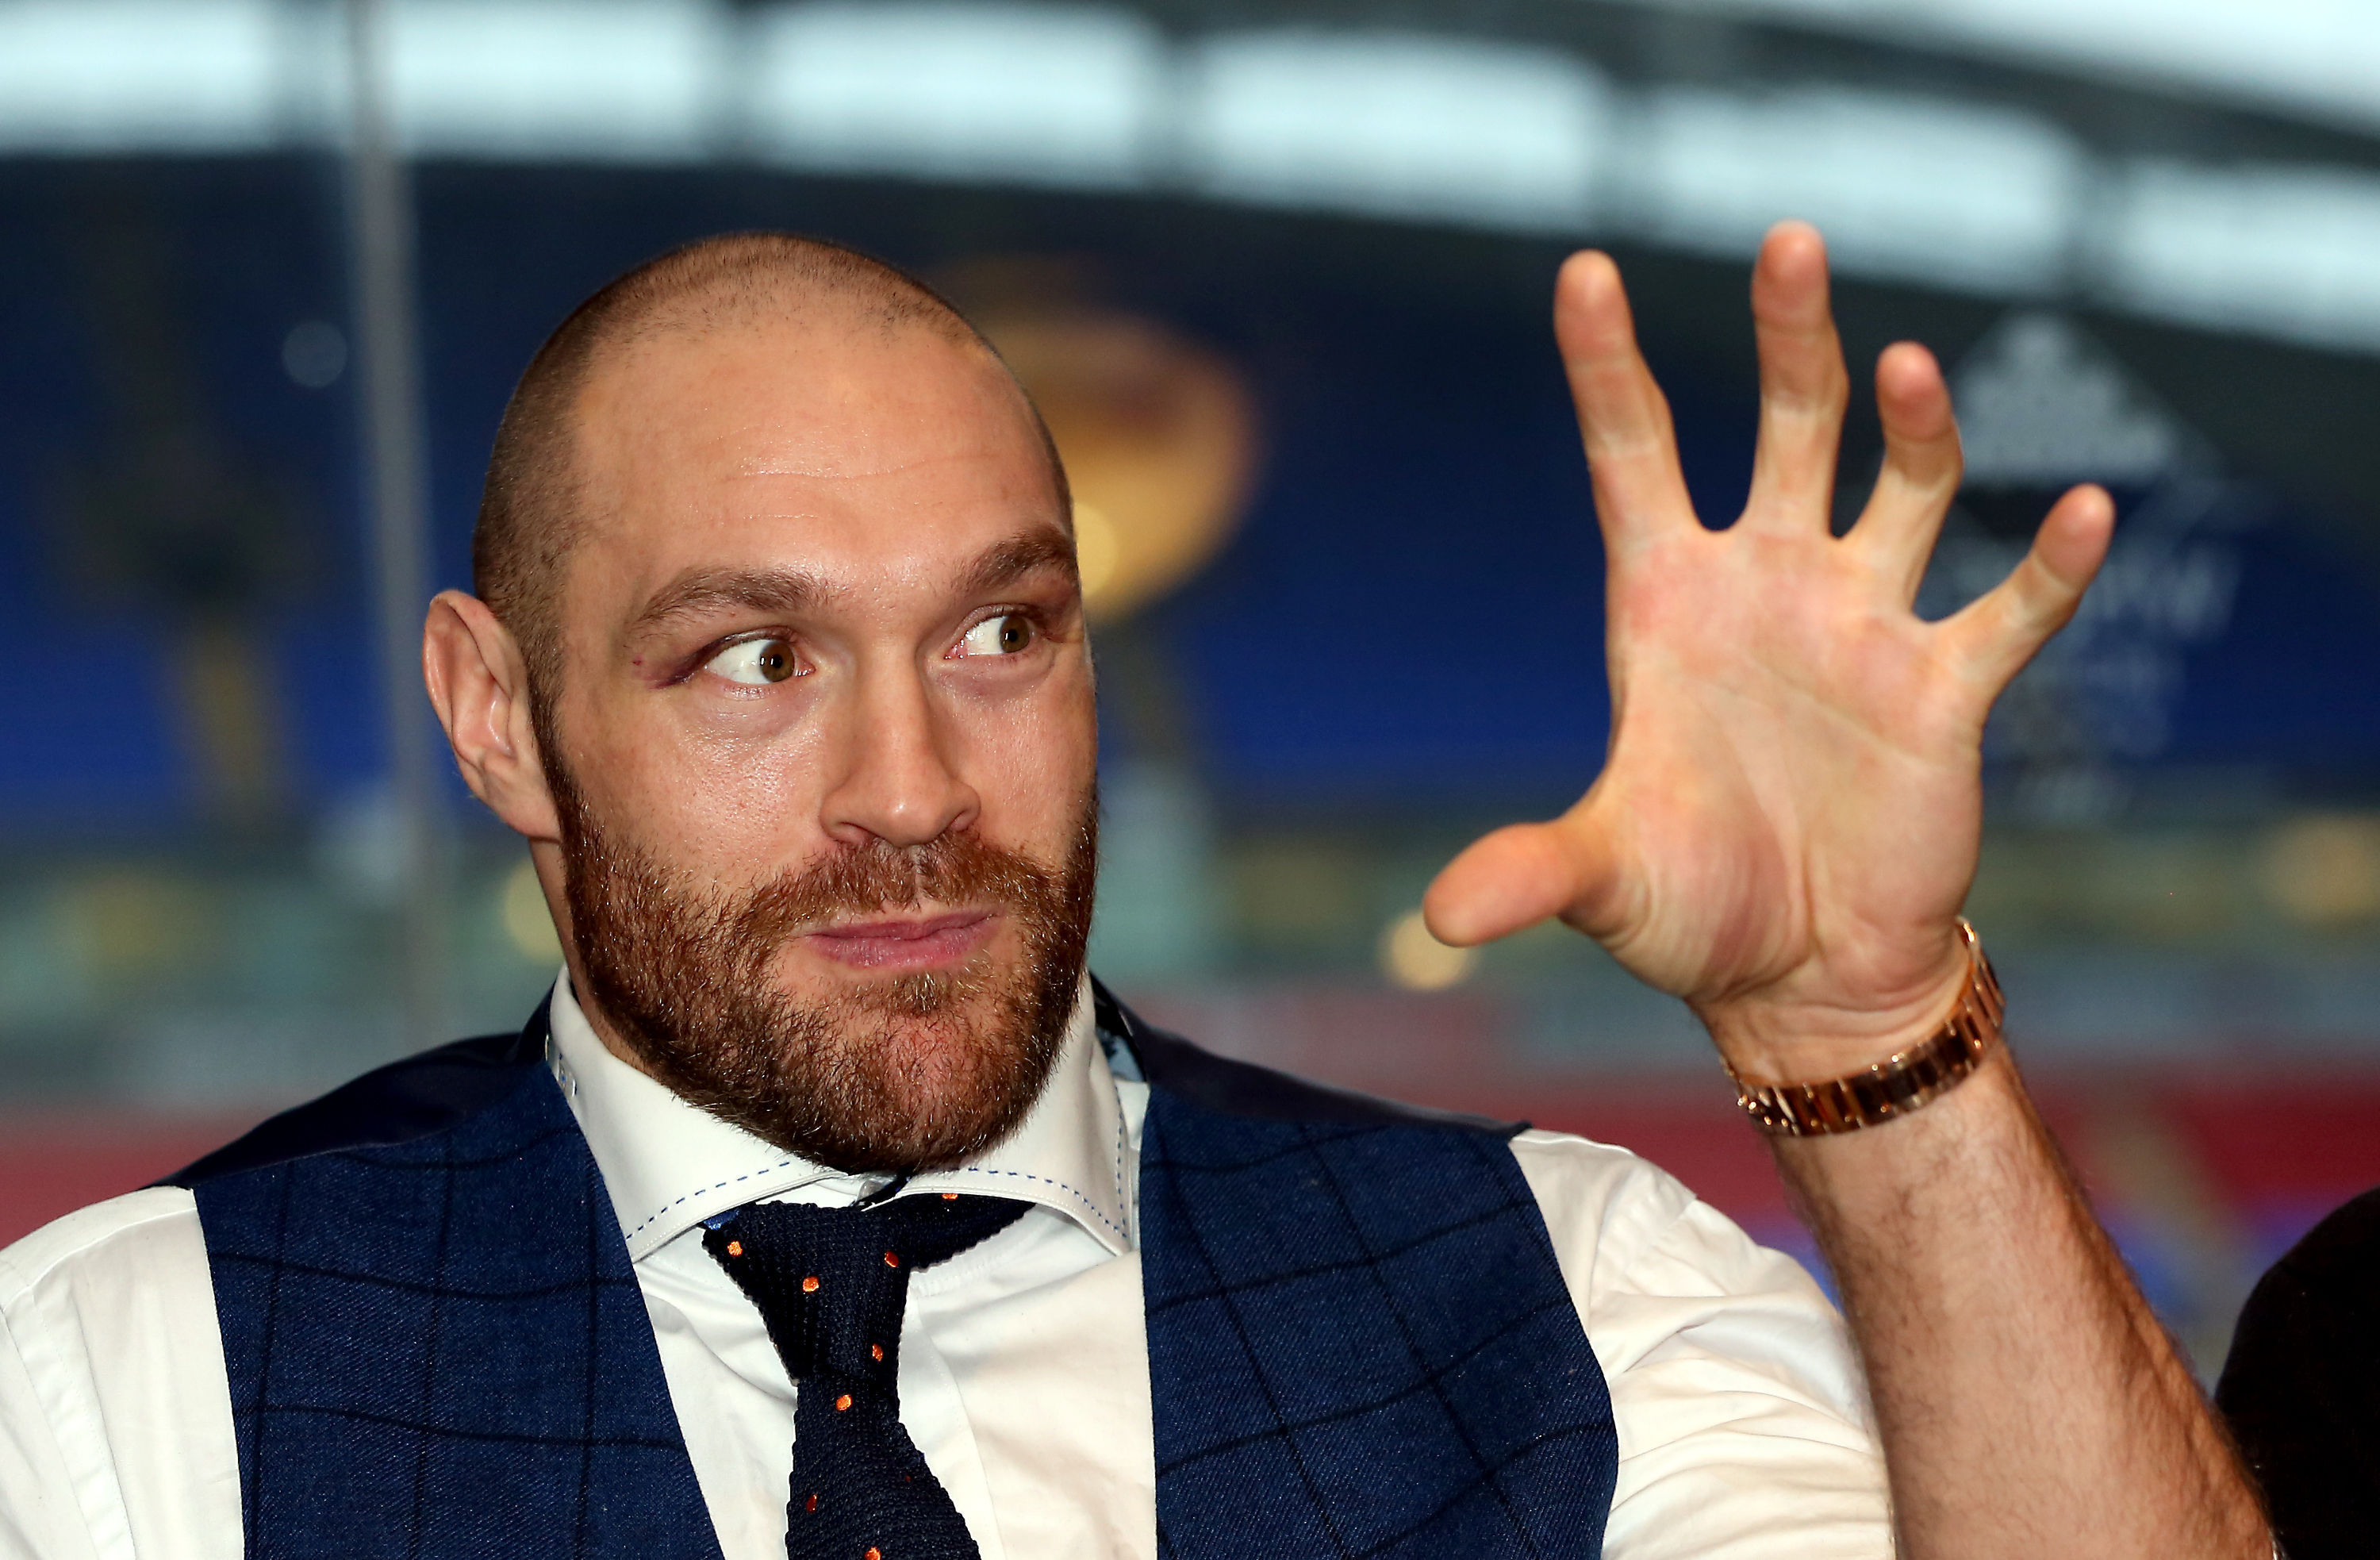 Tyson Fury became world heavyweight champion following his victory over Wladimir Klitschko.